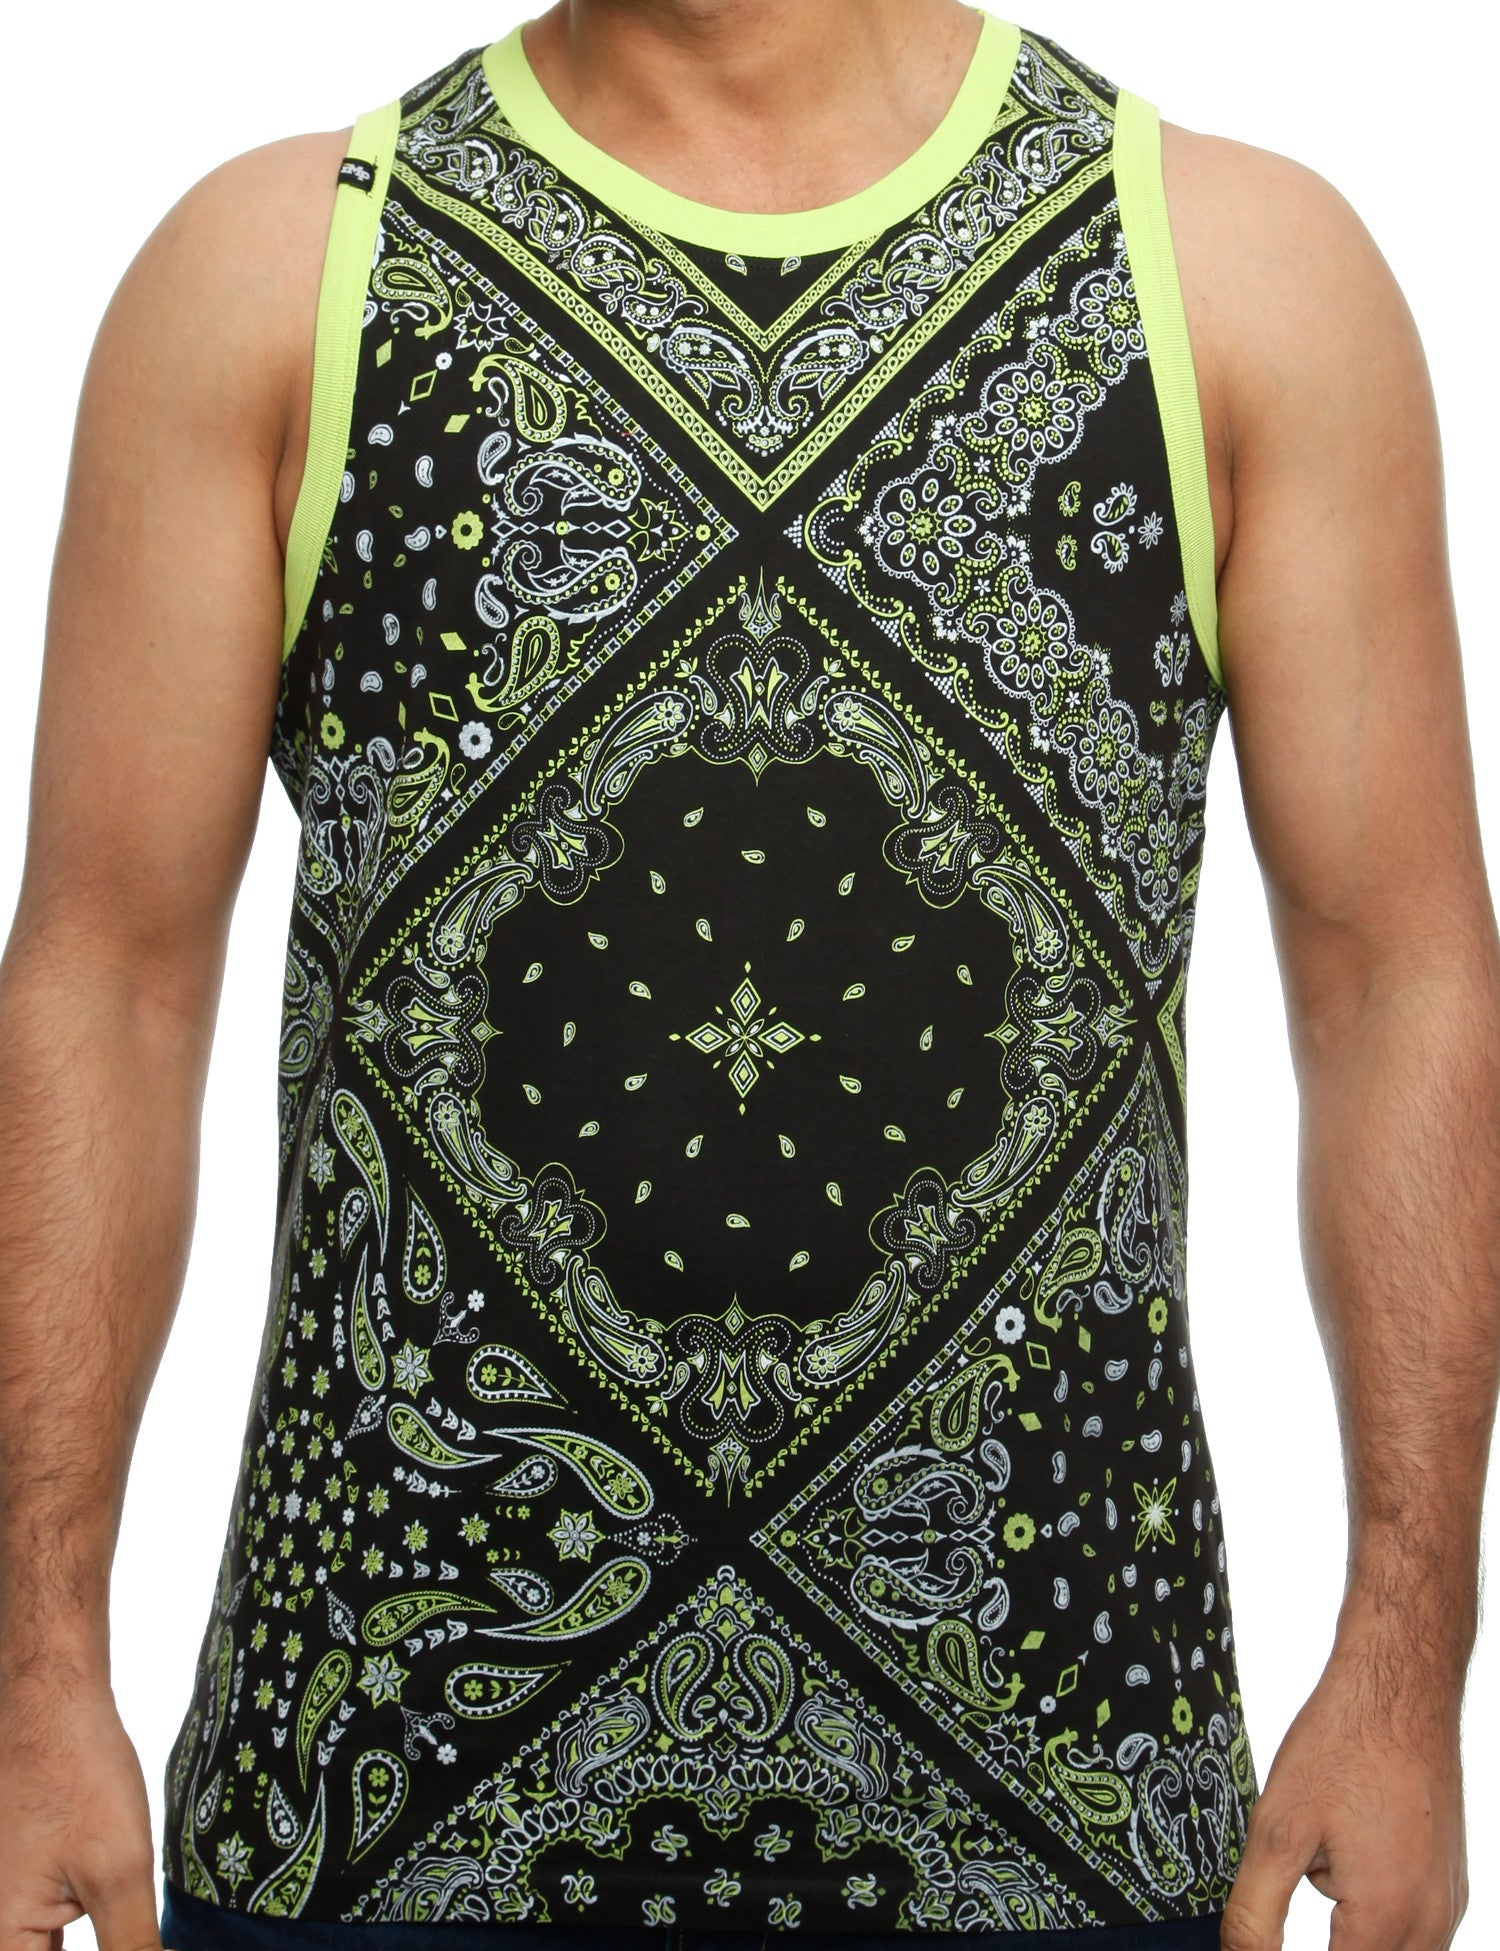 Imperious Tank Top TT501 Lime green